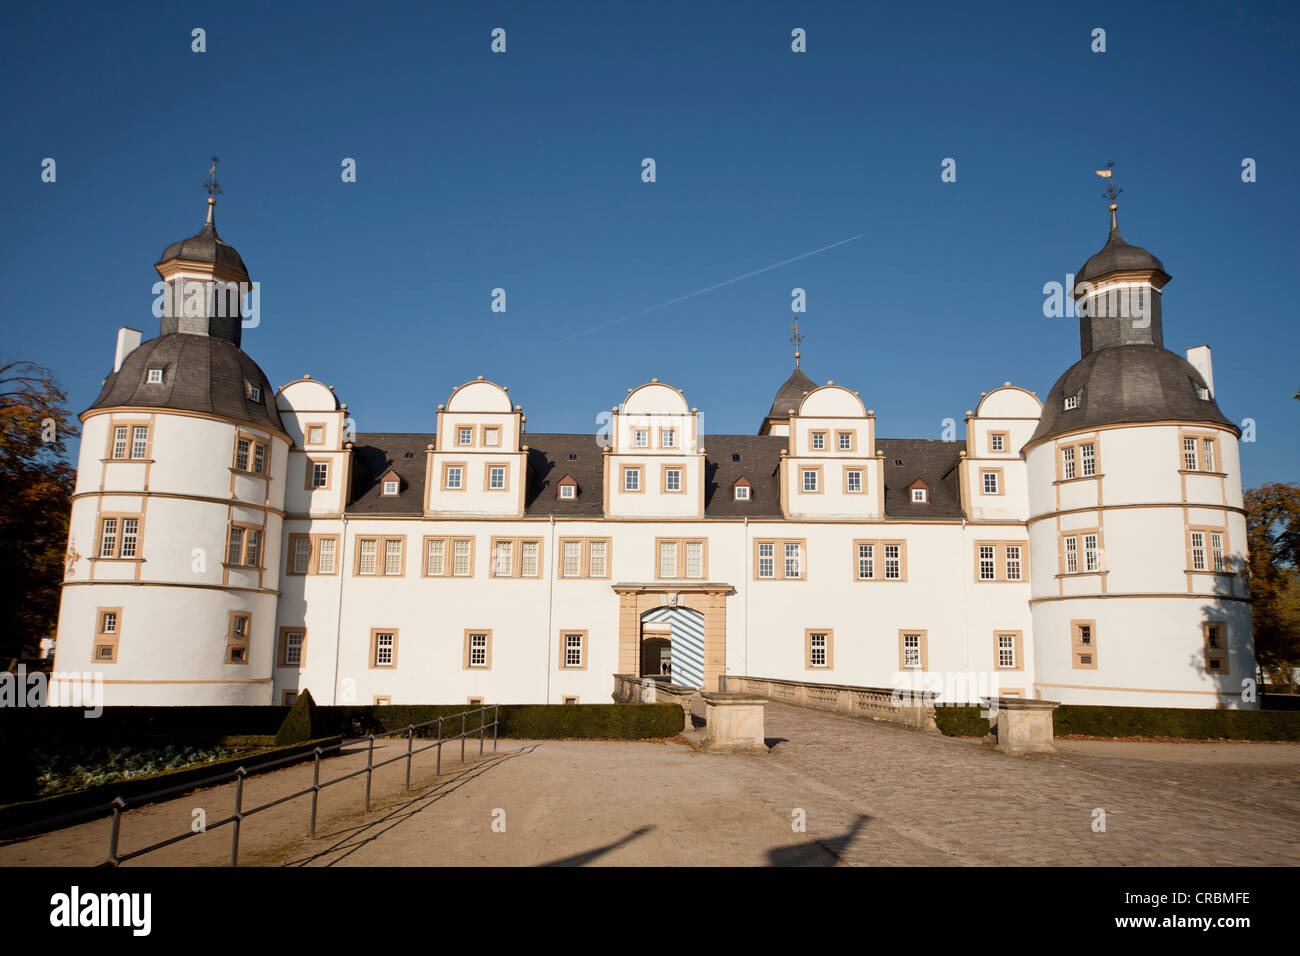 Schloss Neuhaus castle, an outstanding Weser-Renaissance building in Paderborn, North Rhine-Westphalia, Germany, - Stock Image